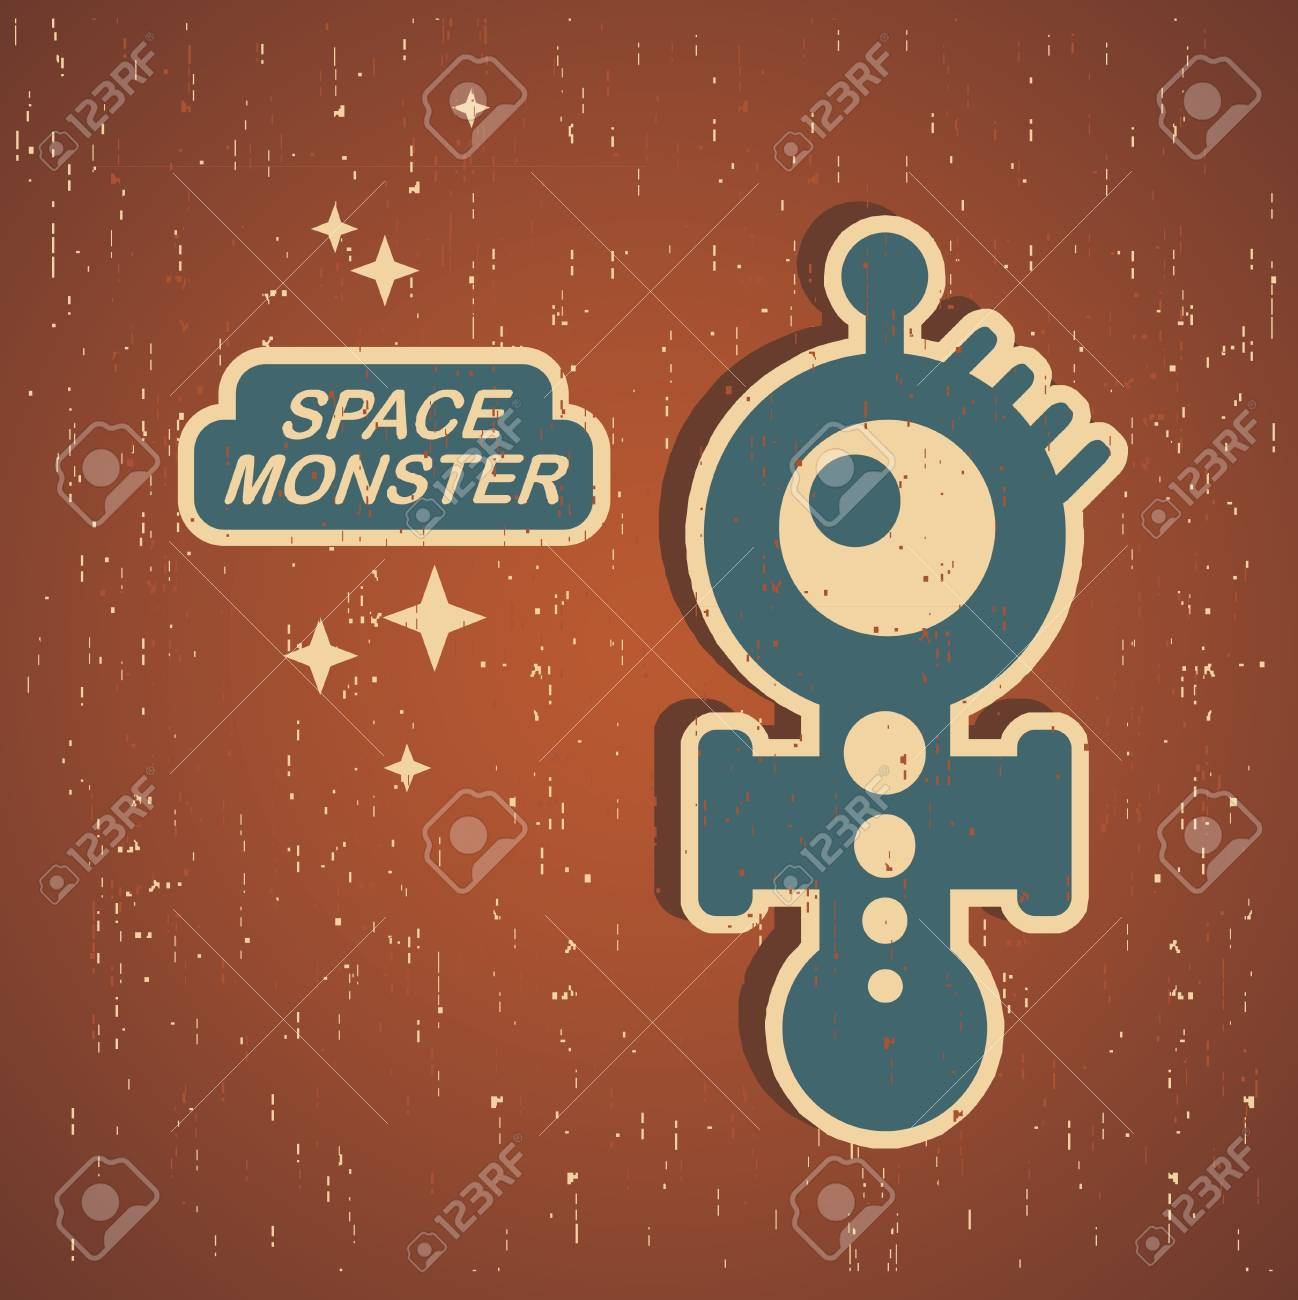 Vintage monster. Retro robot illustration Stock Vector - 15017024